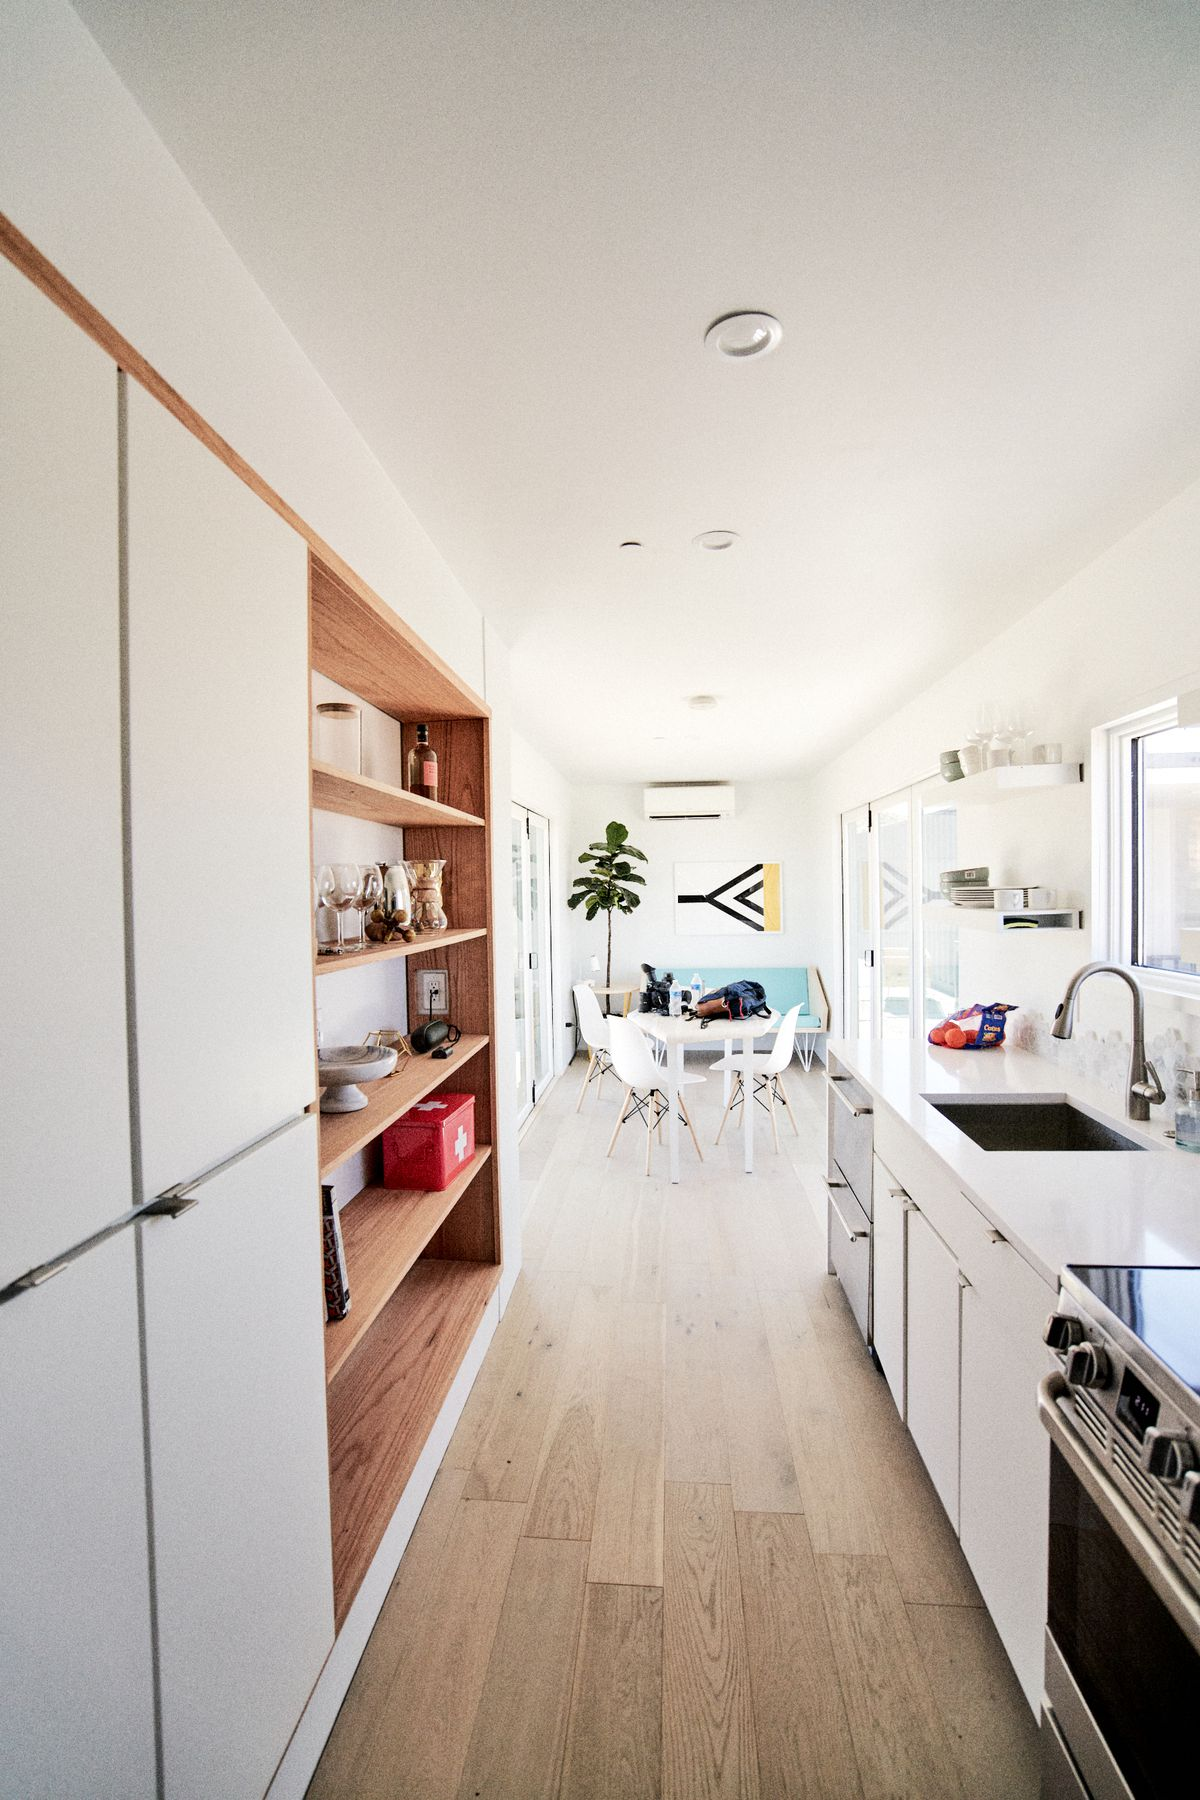 The interior of a shipping container home. A long galley kitchen has wood floors, white cabinets, open wooden shelving, and views onto the dining room and couch.